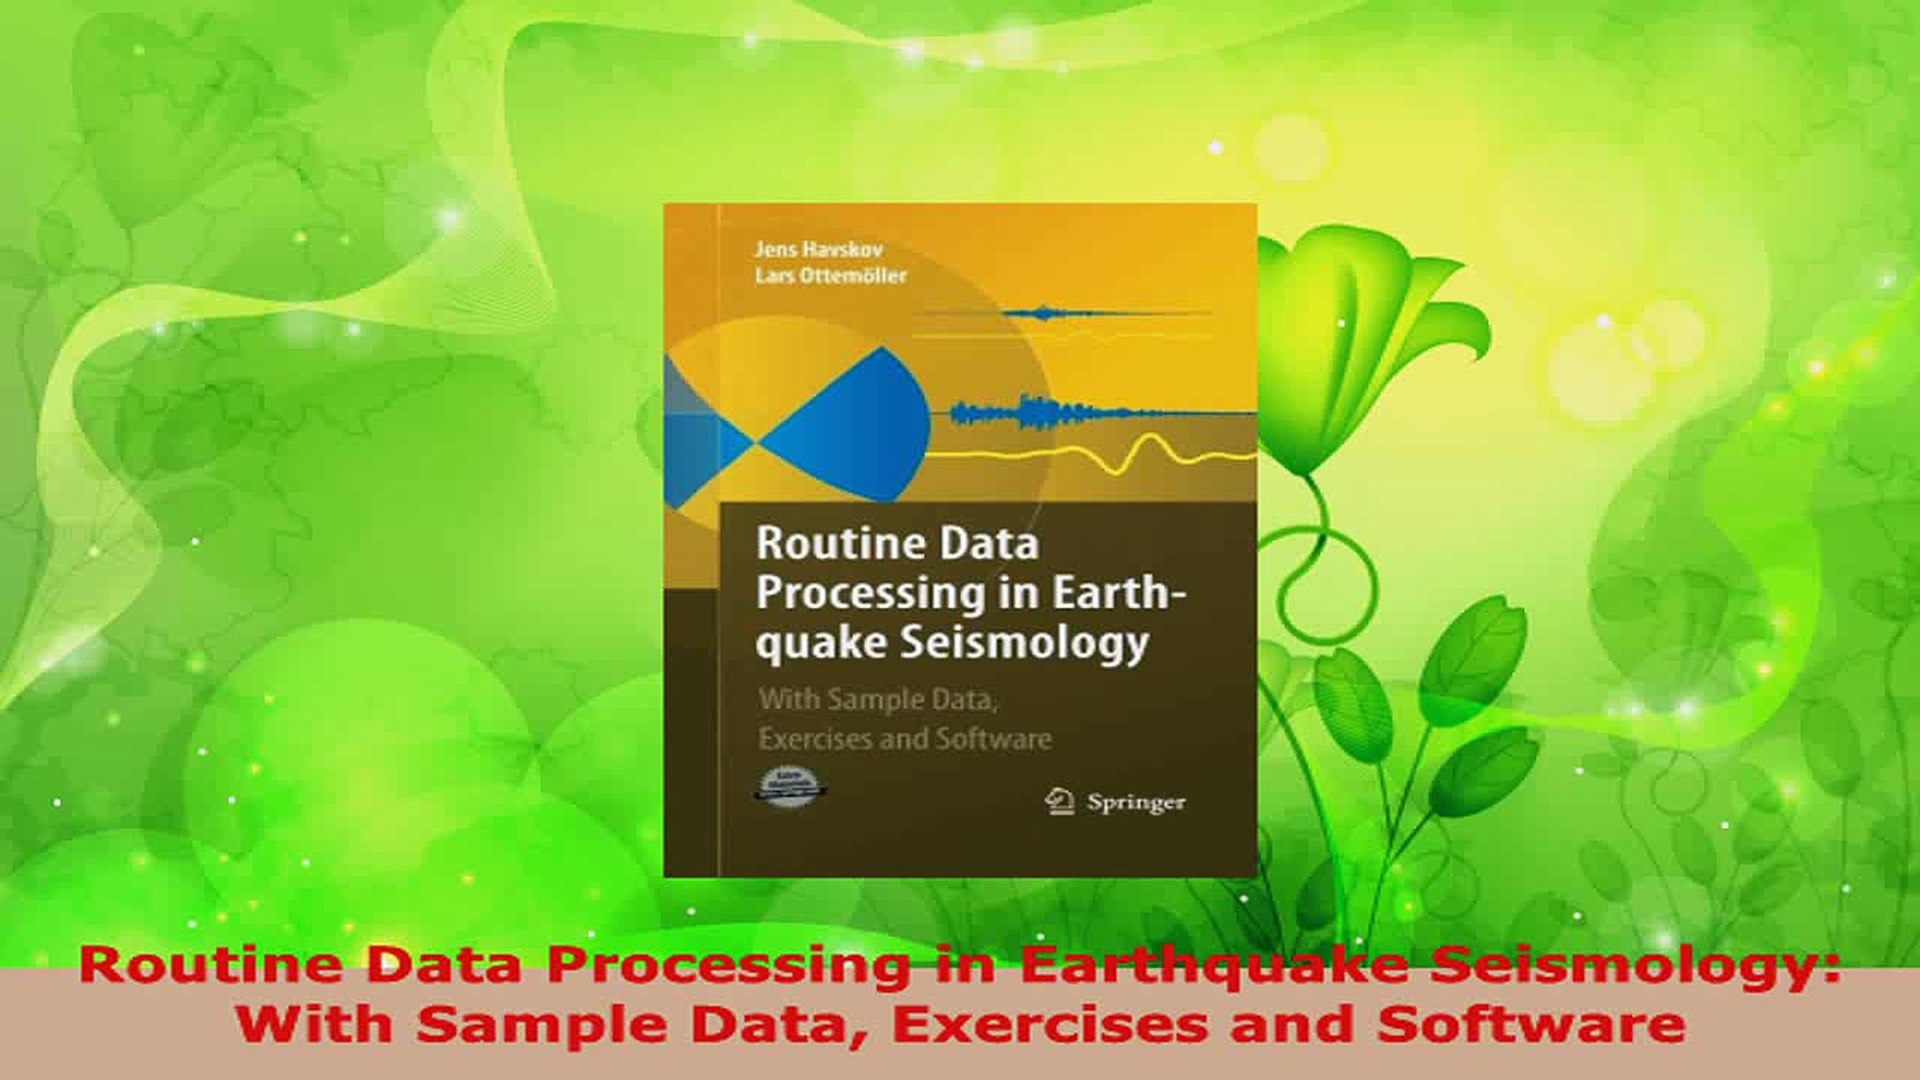 Routine Data Processing in Earthquake Seismology: With Sample Data, Exercises and Software